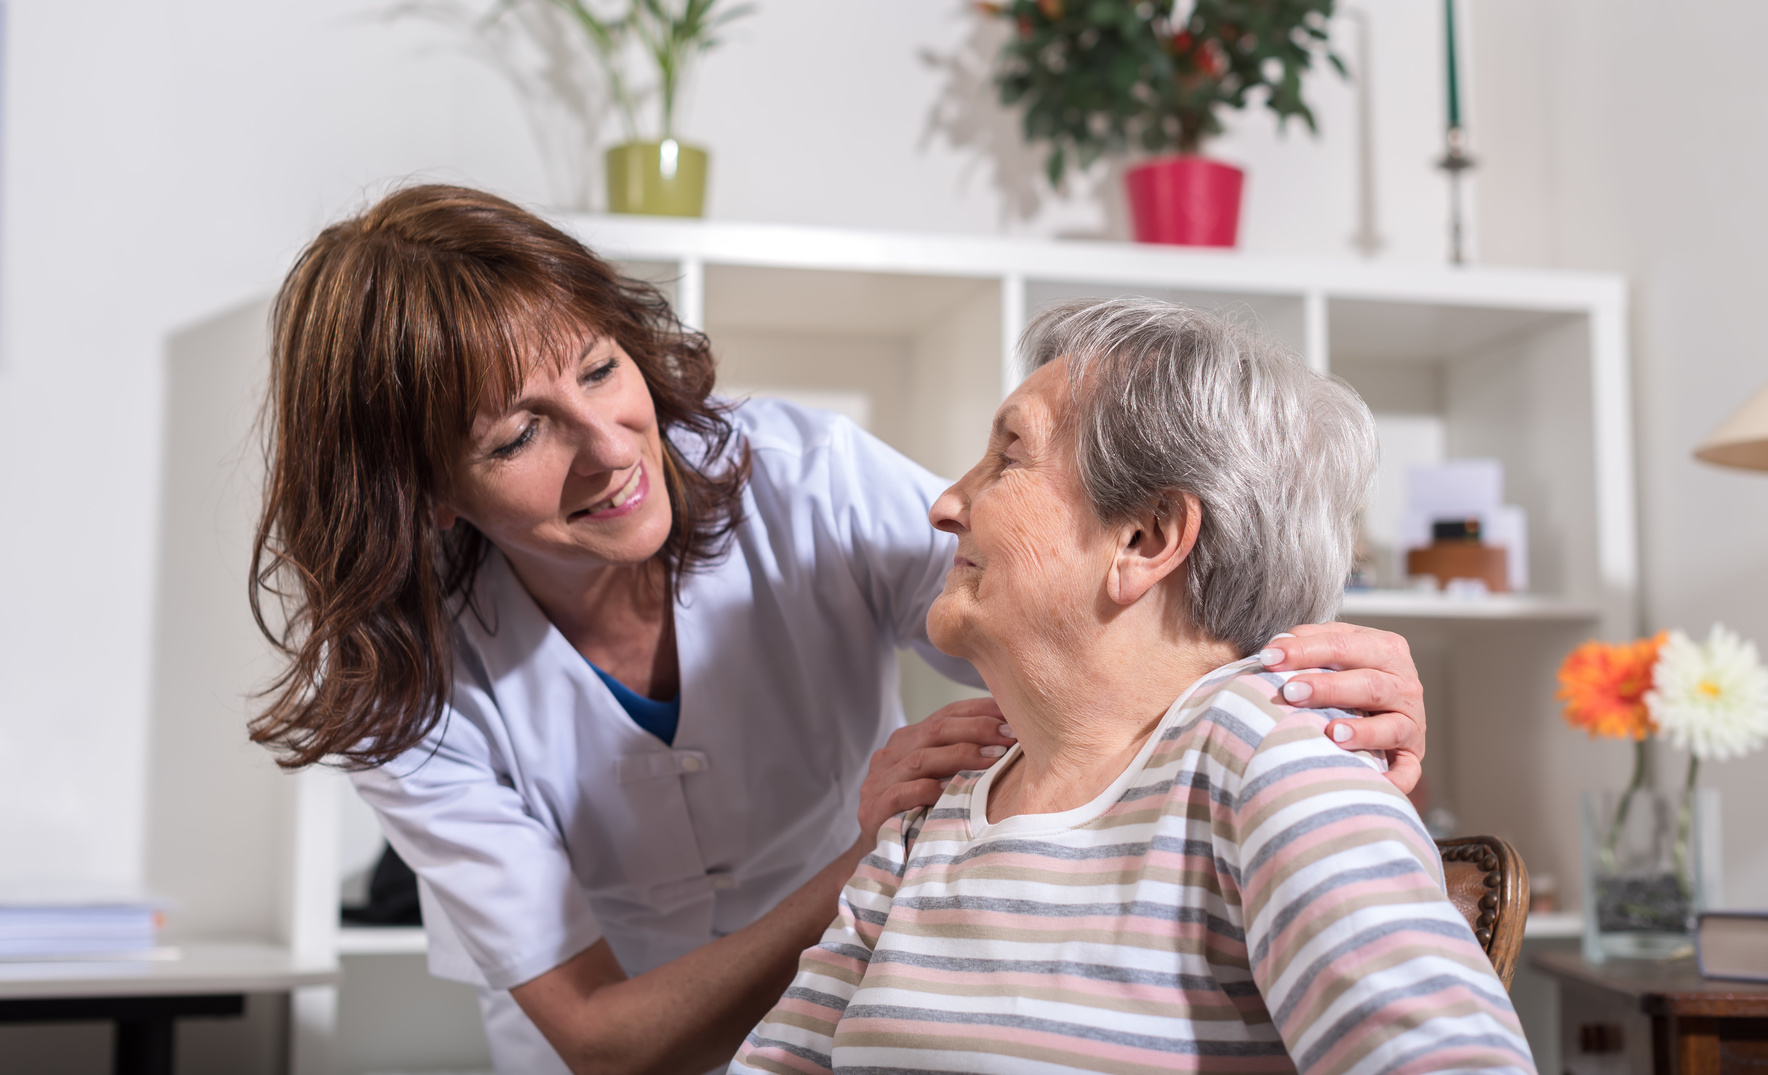 Nurse with her hands on the shoulder of a senior woman